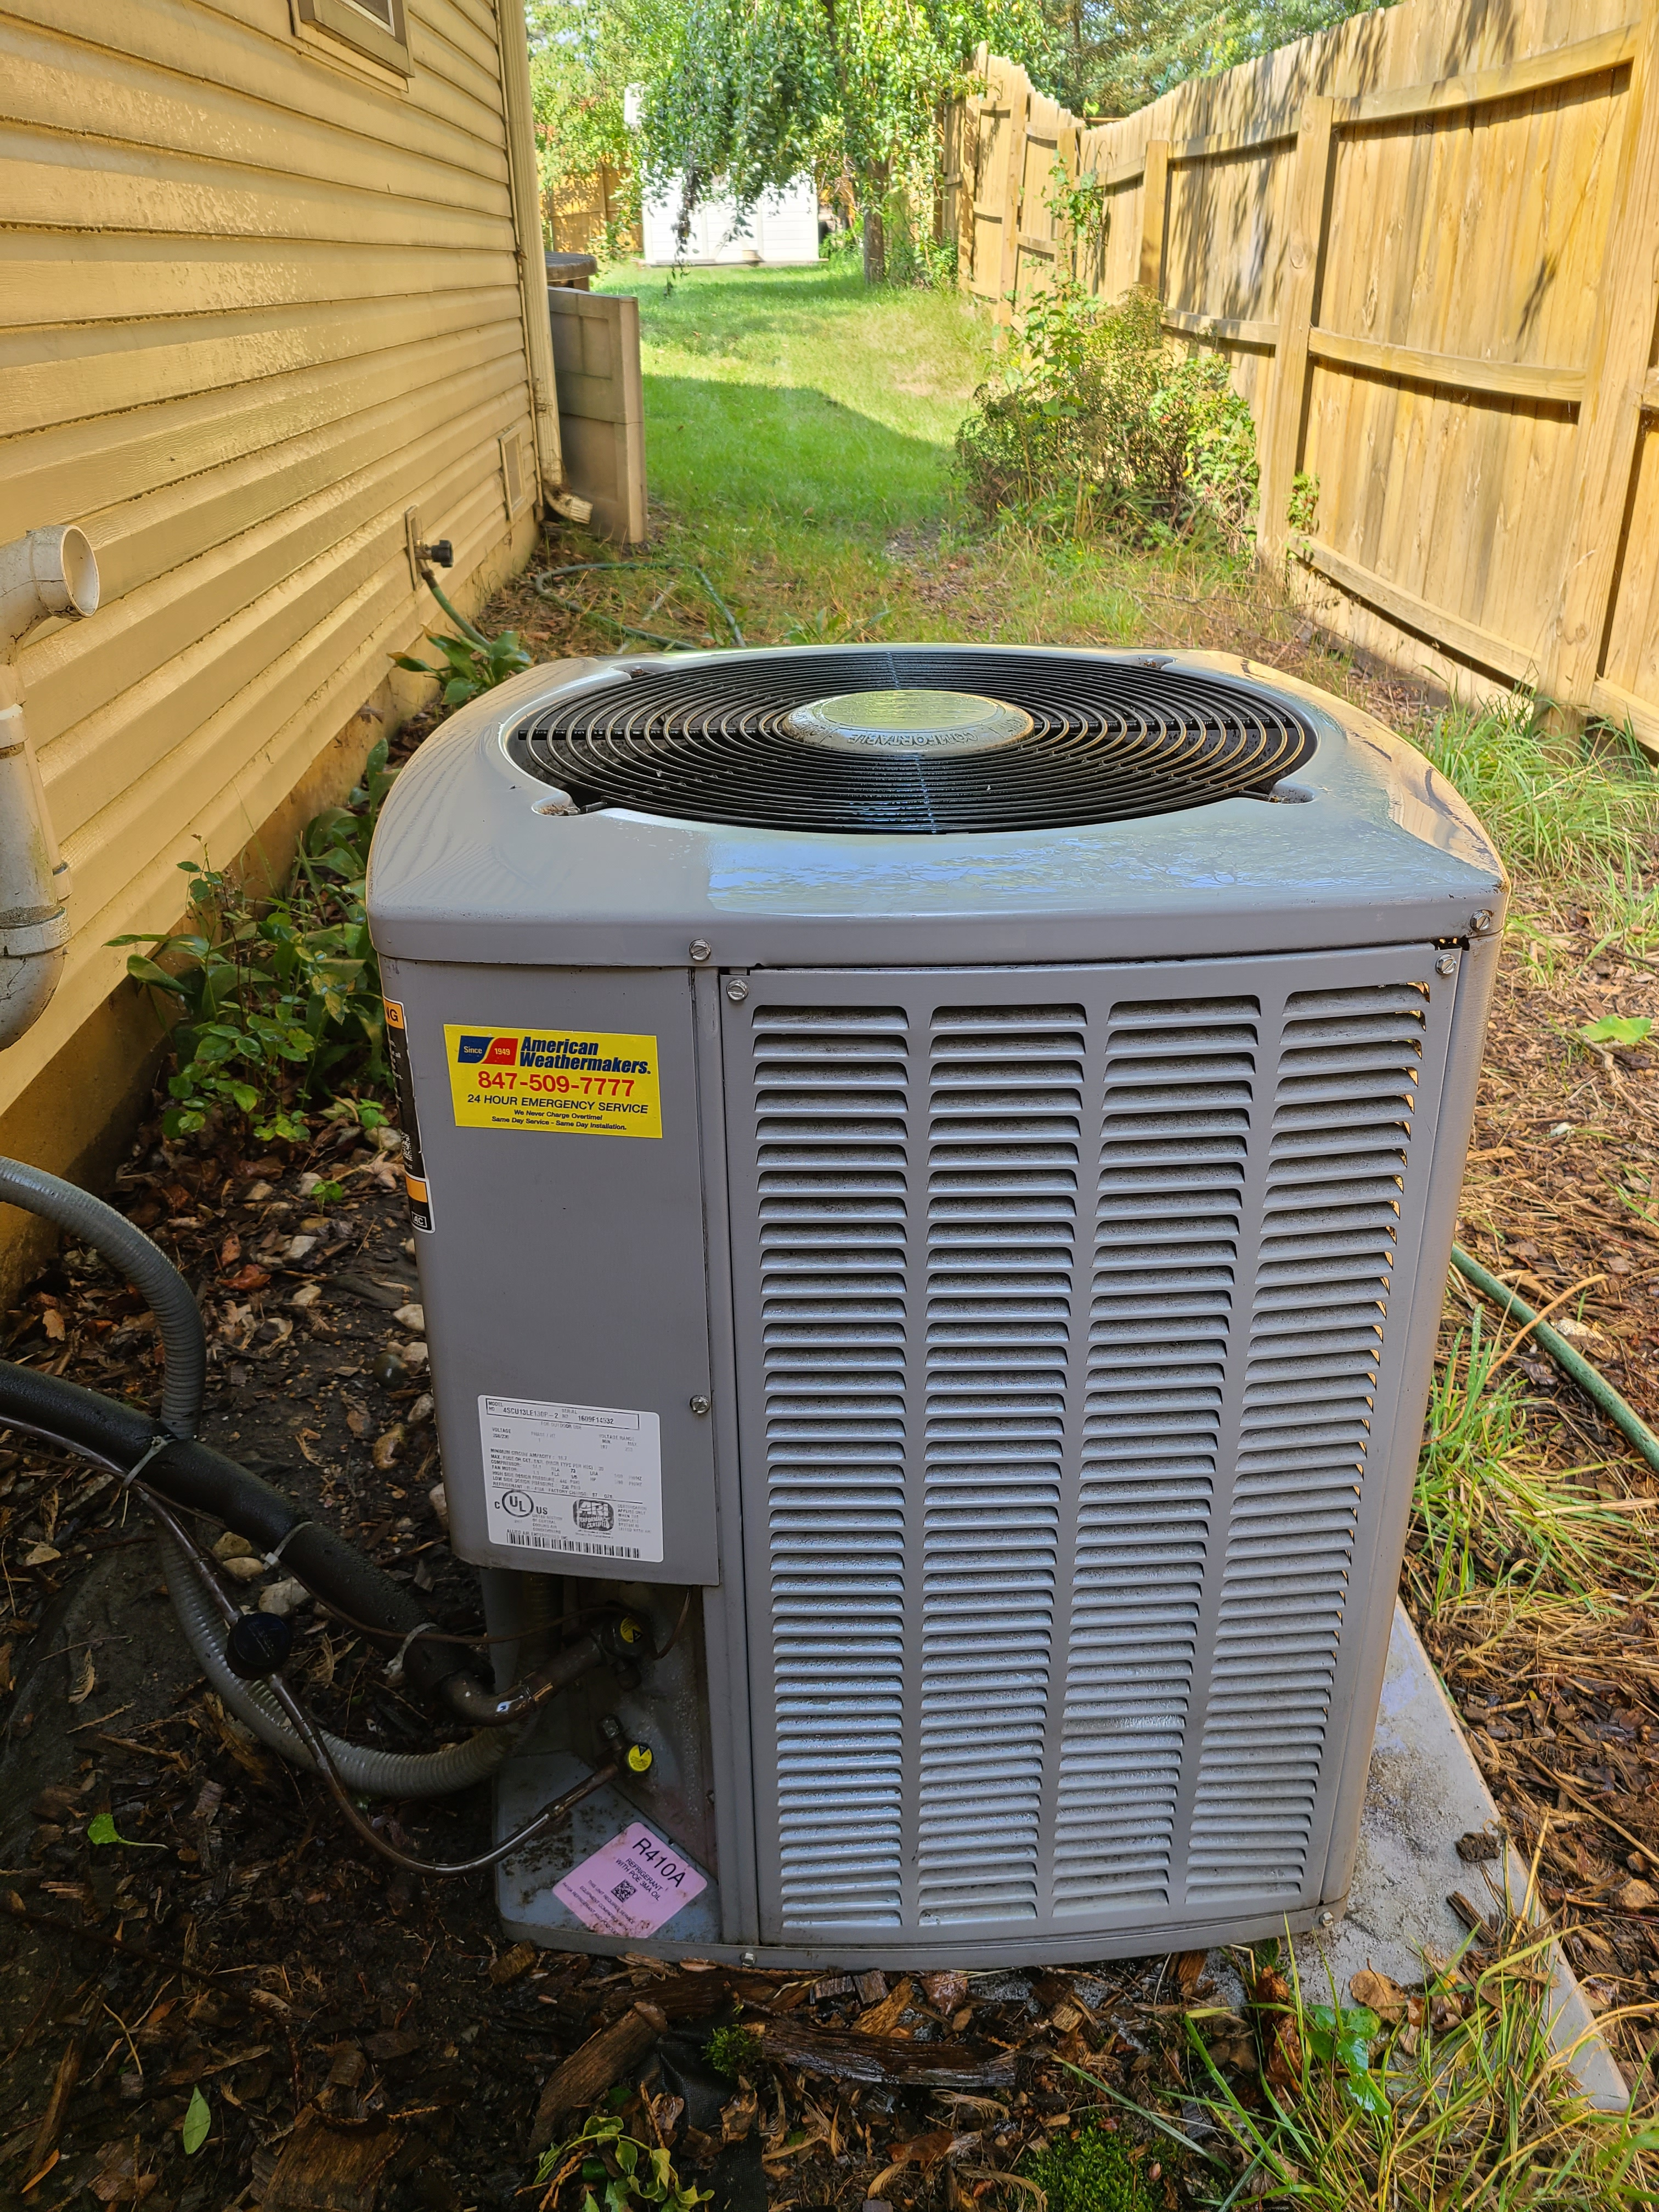 Armstrong condensing unit